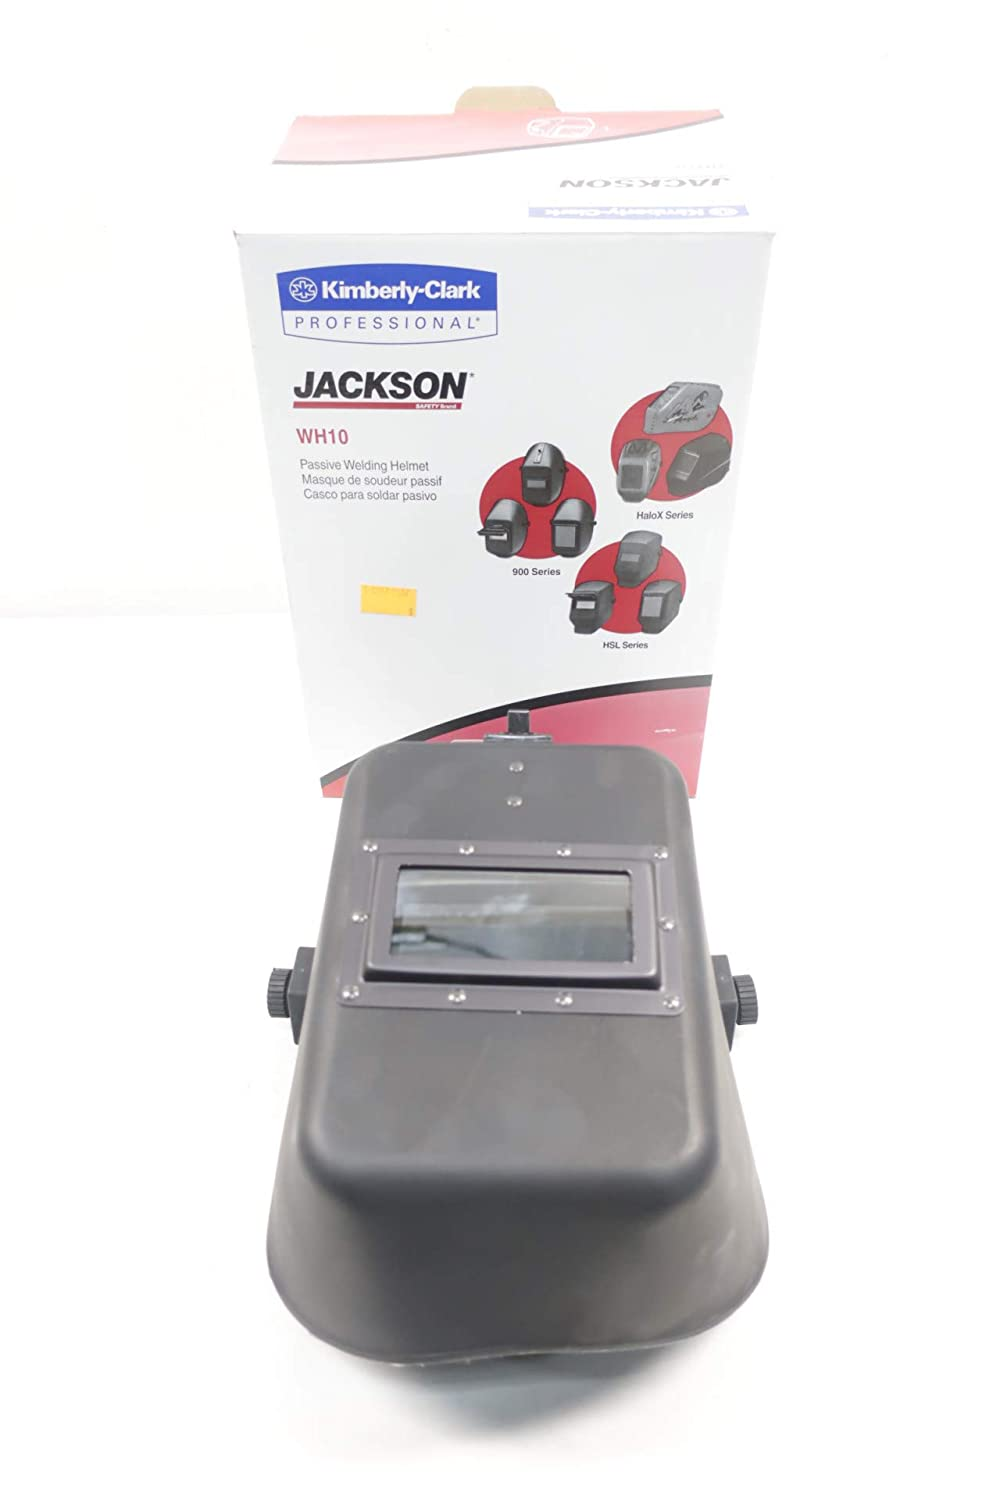 JACKSON 14536 WH10 990P Quick Slide Front Passive Welding Helmet D663868: Amazon.com: Industrial & Scientific